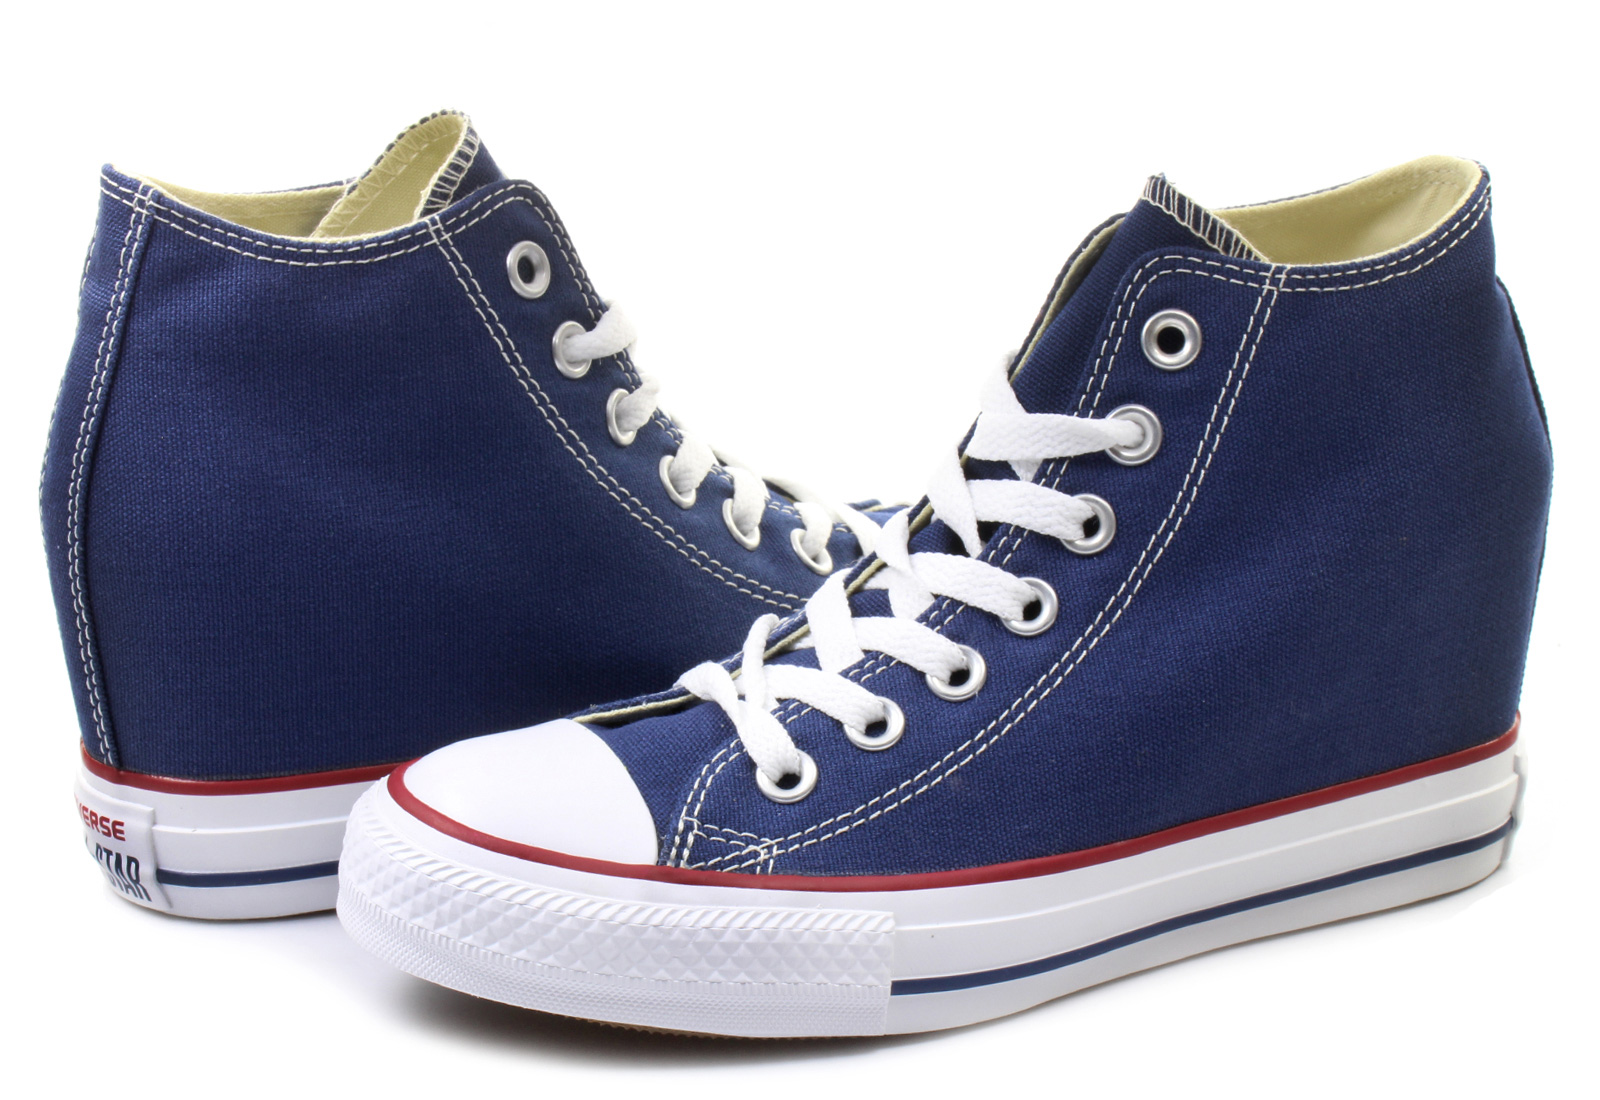 85810b6ce768 Converse Sneakers - Chuck Taylor All Star Lux Hi - 547199c - Online ...